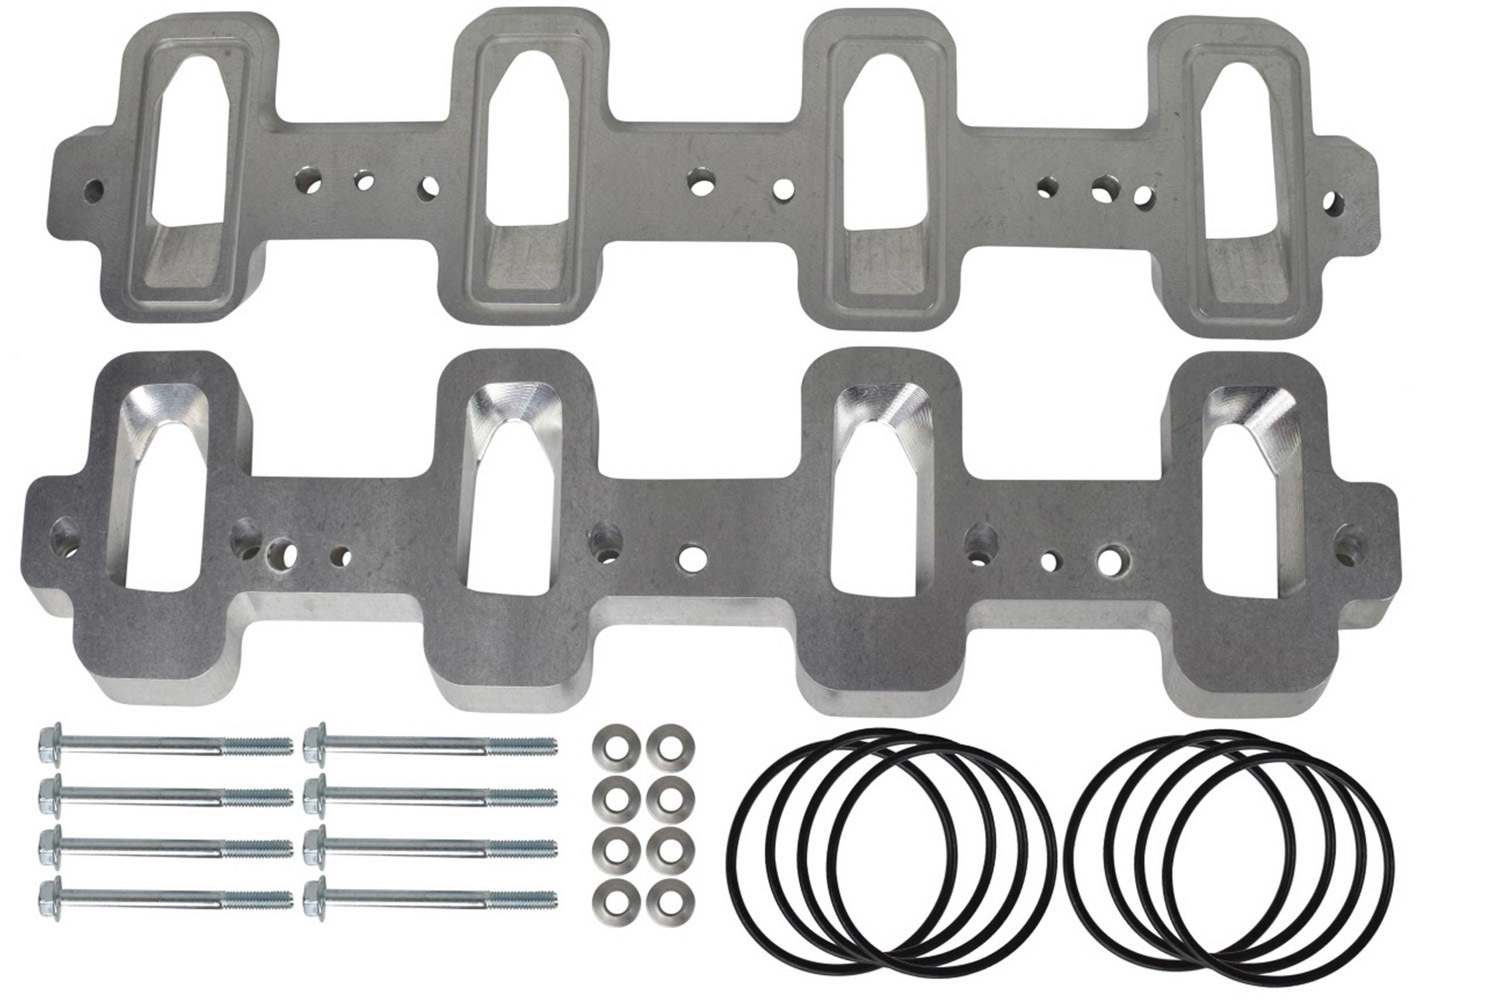 ICT Billet 551316 Intake Manifold Spacer, 1/2 in Tall, Gaskets / Hardware Included, Rectangle to Cathedral Port, Aluminum, Natural, GM LS-Series, Kit